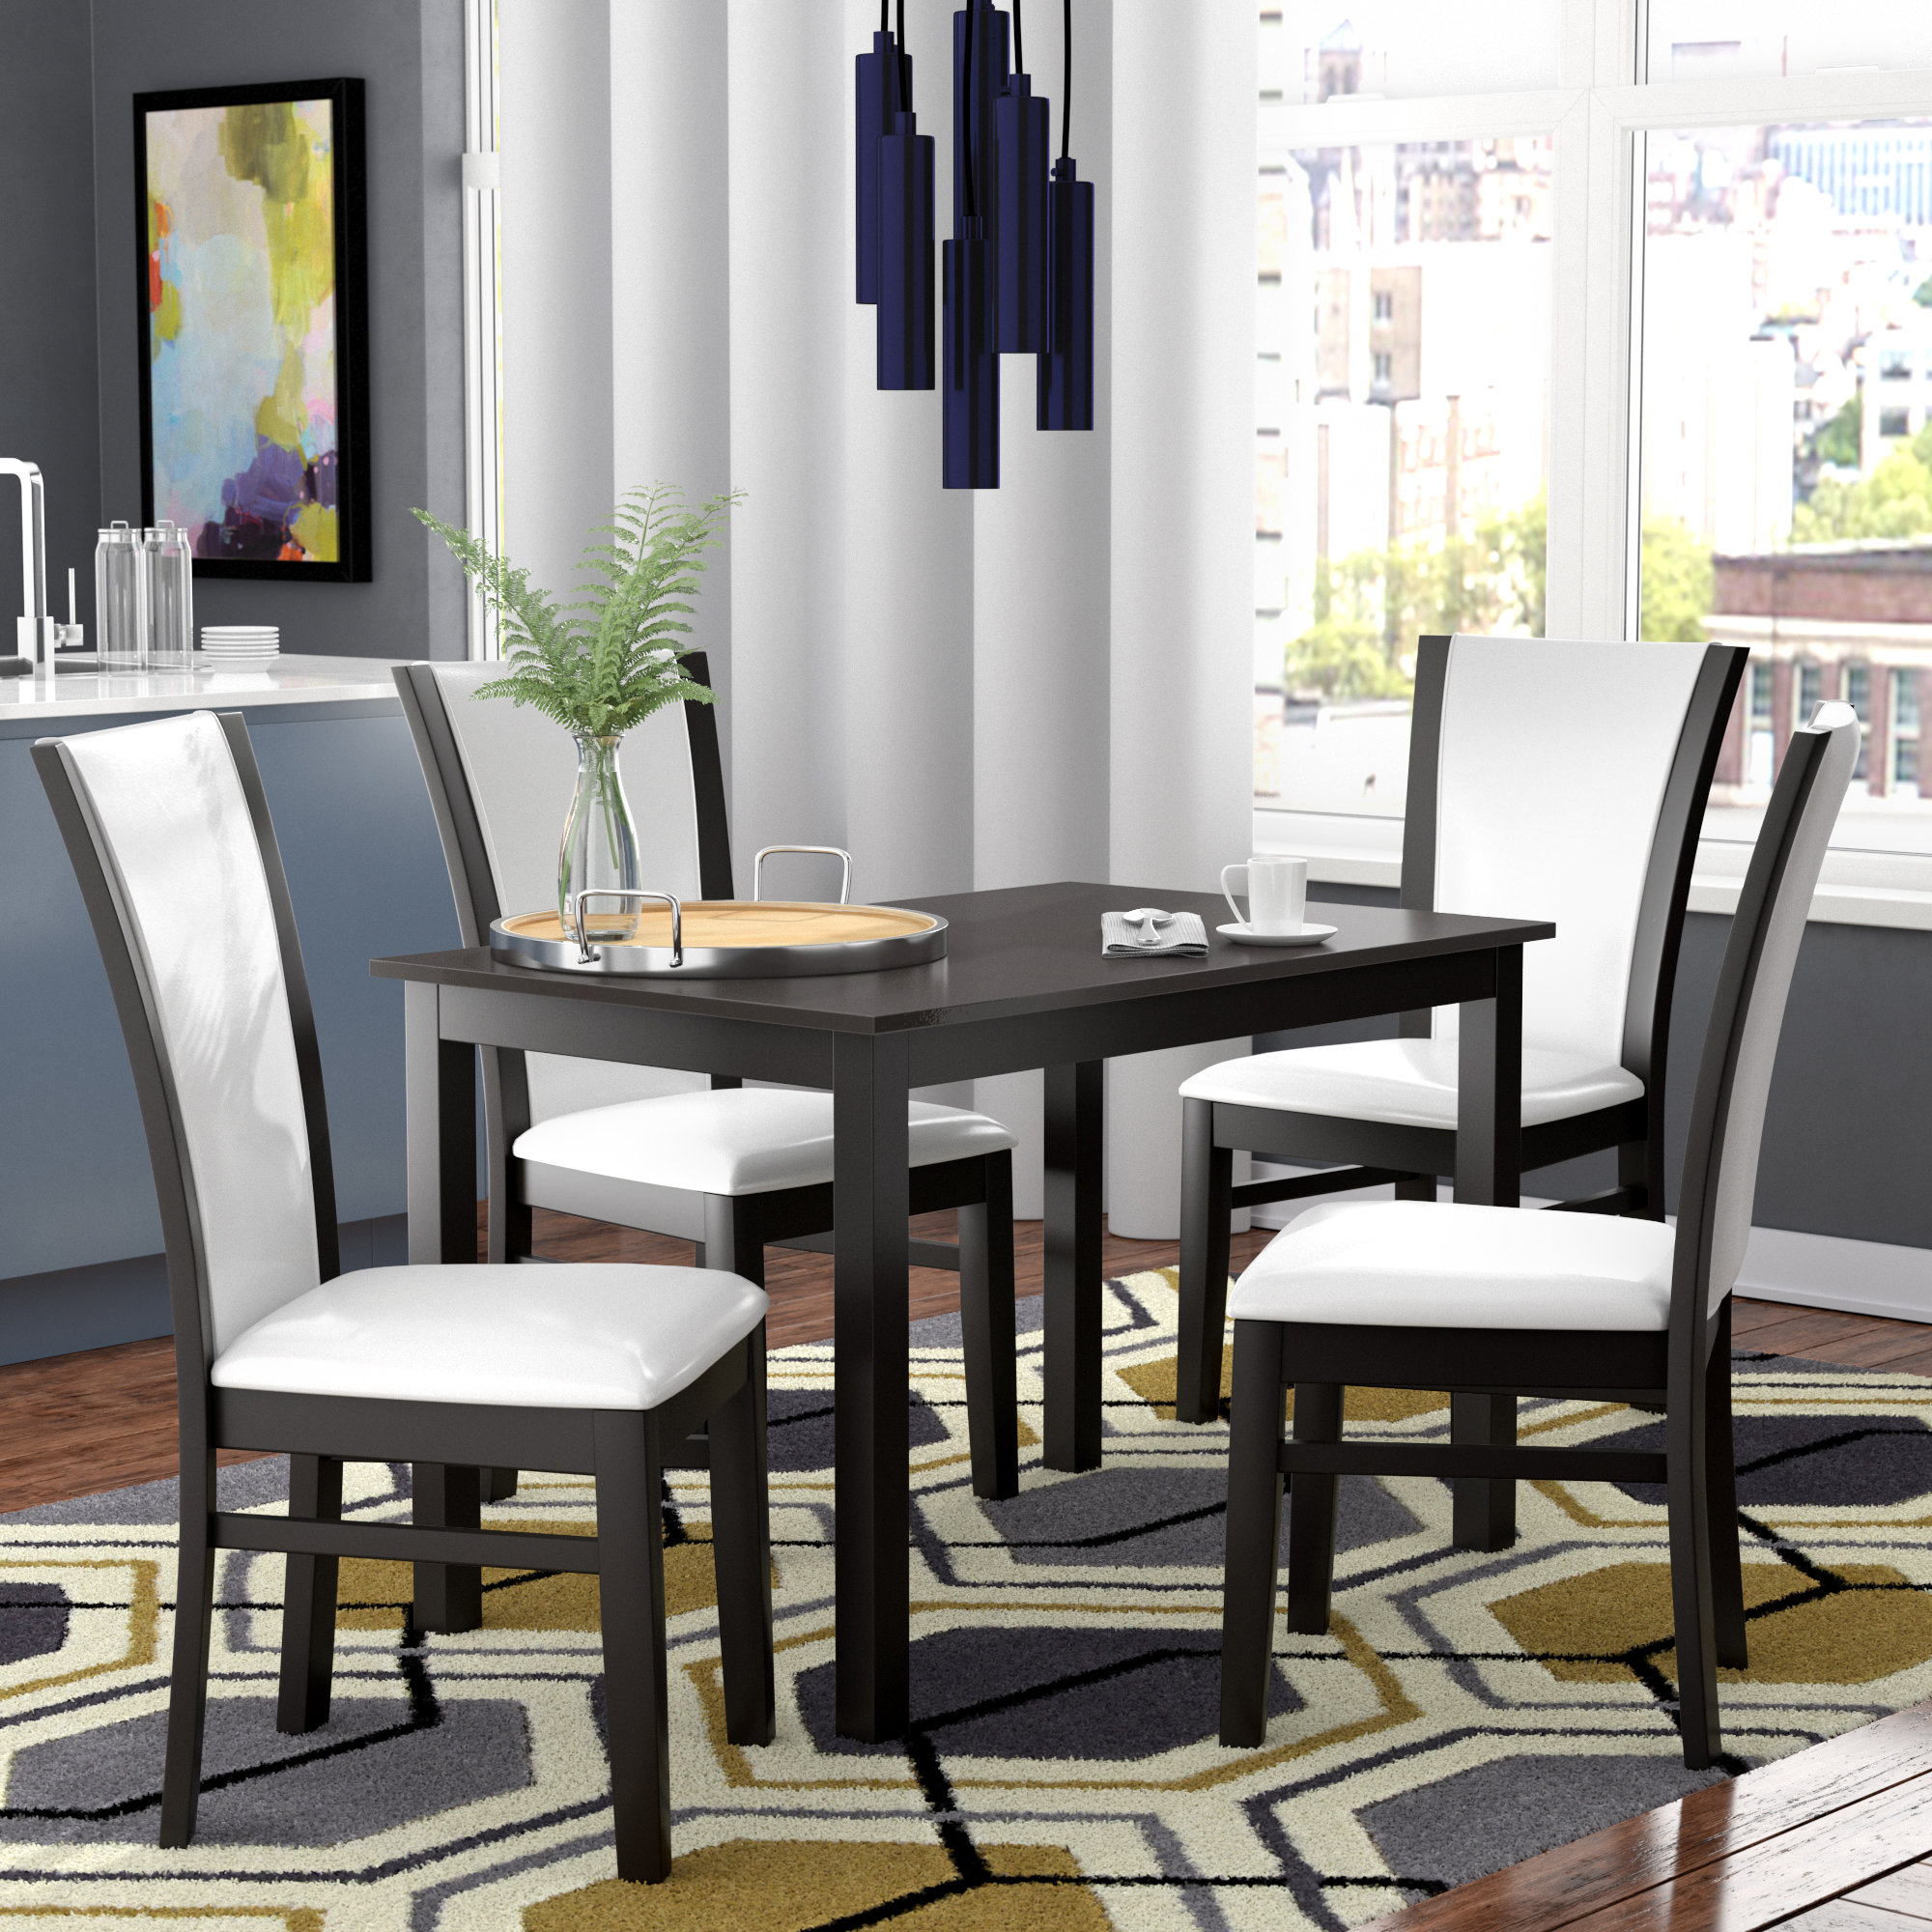 Latest Ontonagon Modern And Contemporary 5 Piece Breakfast Nook Dining Set Pertaining To 5 Piece Breakfast Nook Dining Sets (View 2 of 20)